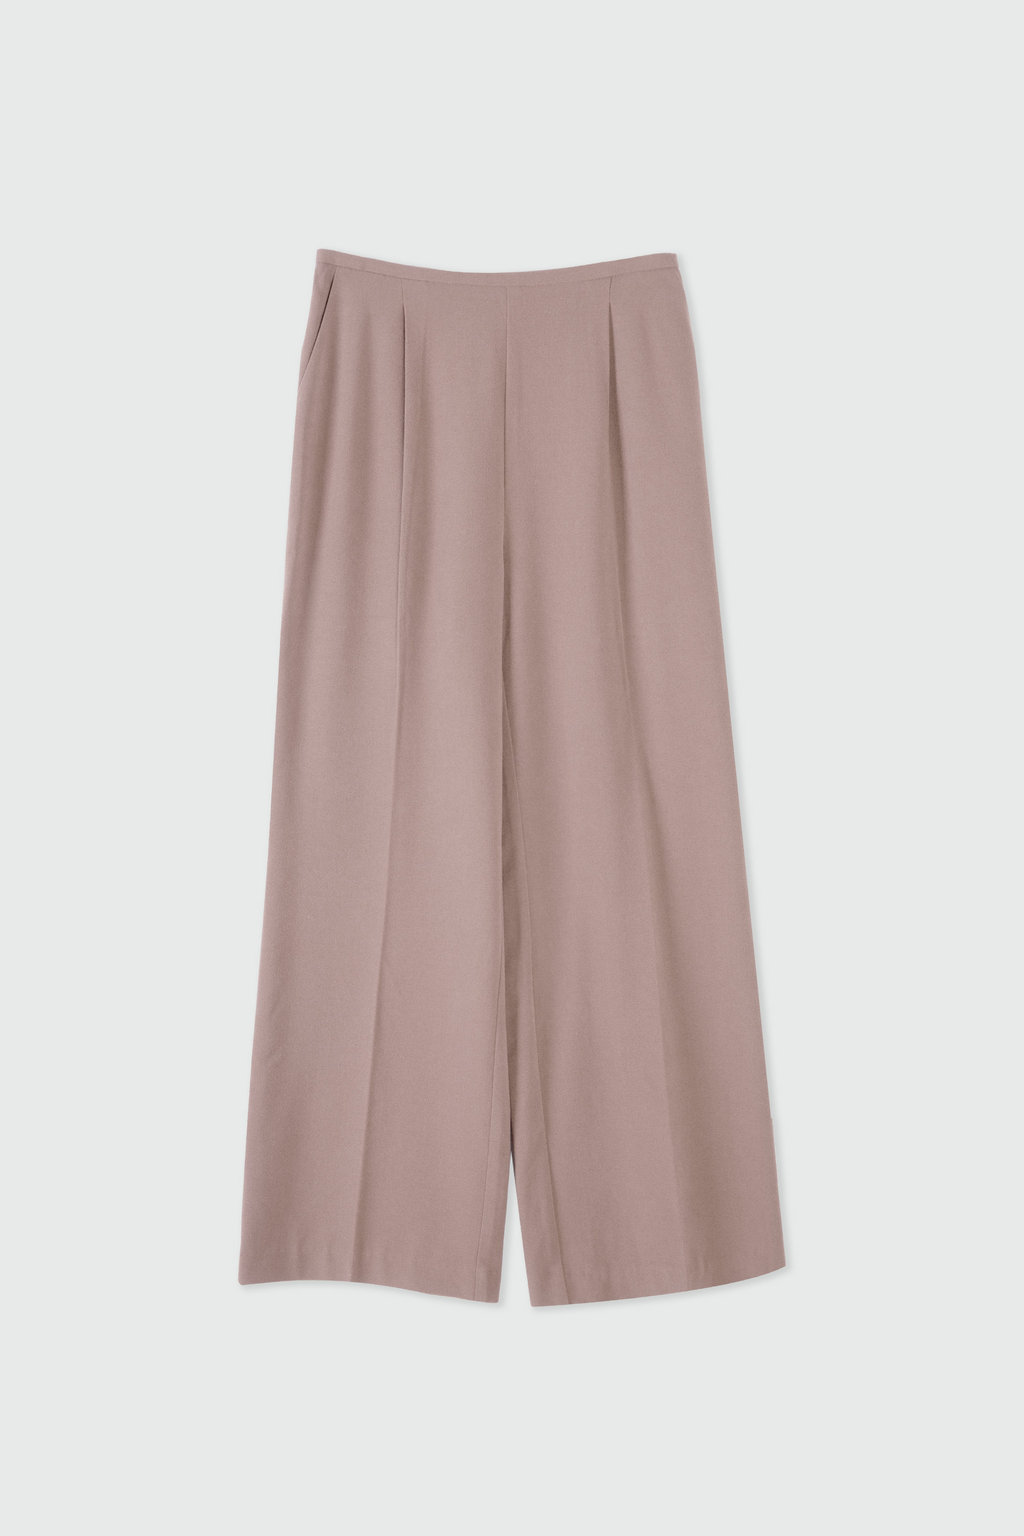 Pant 2894 Taupe 5